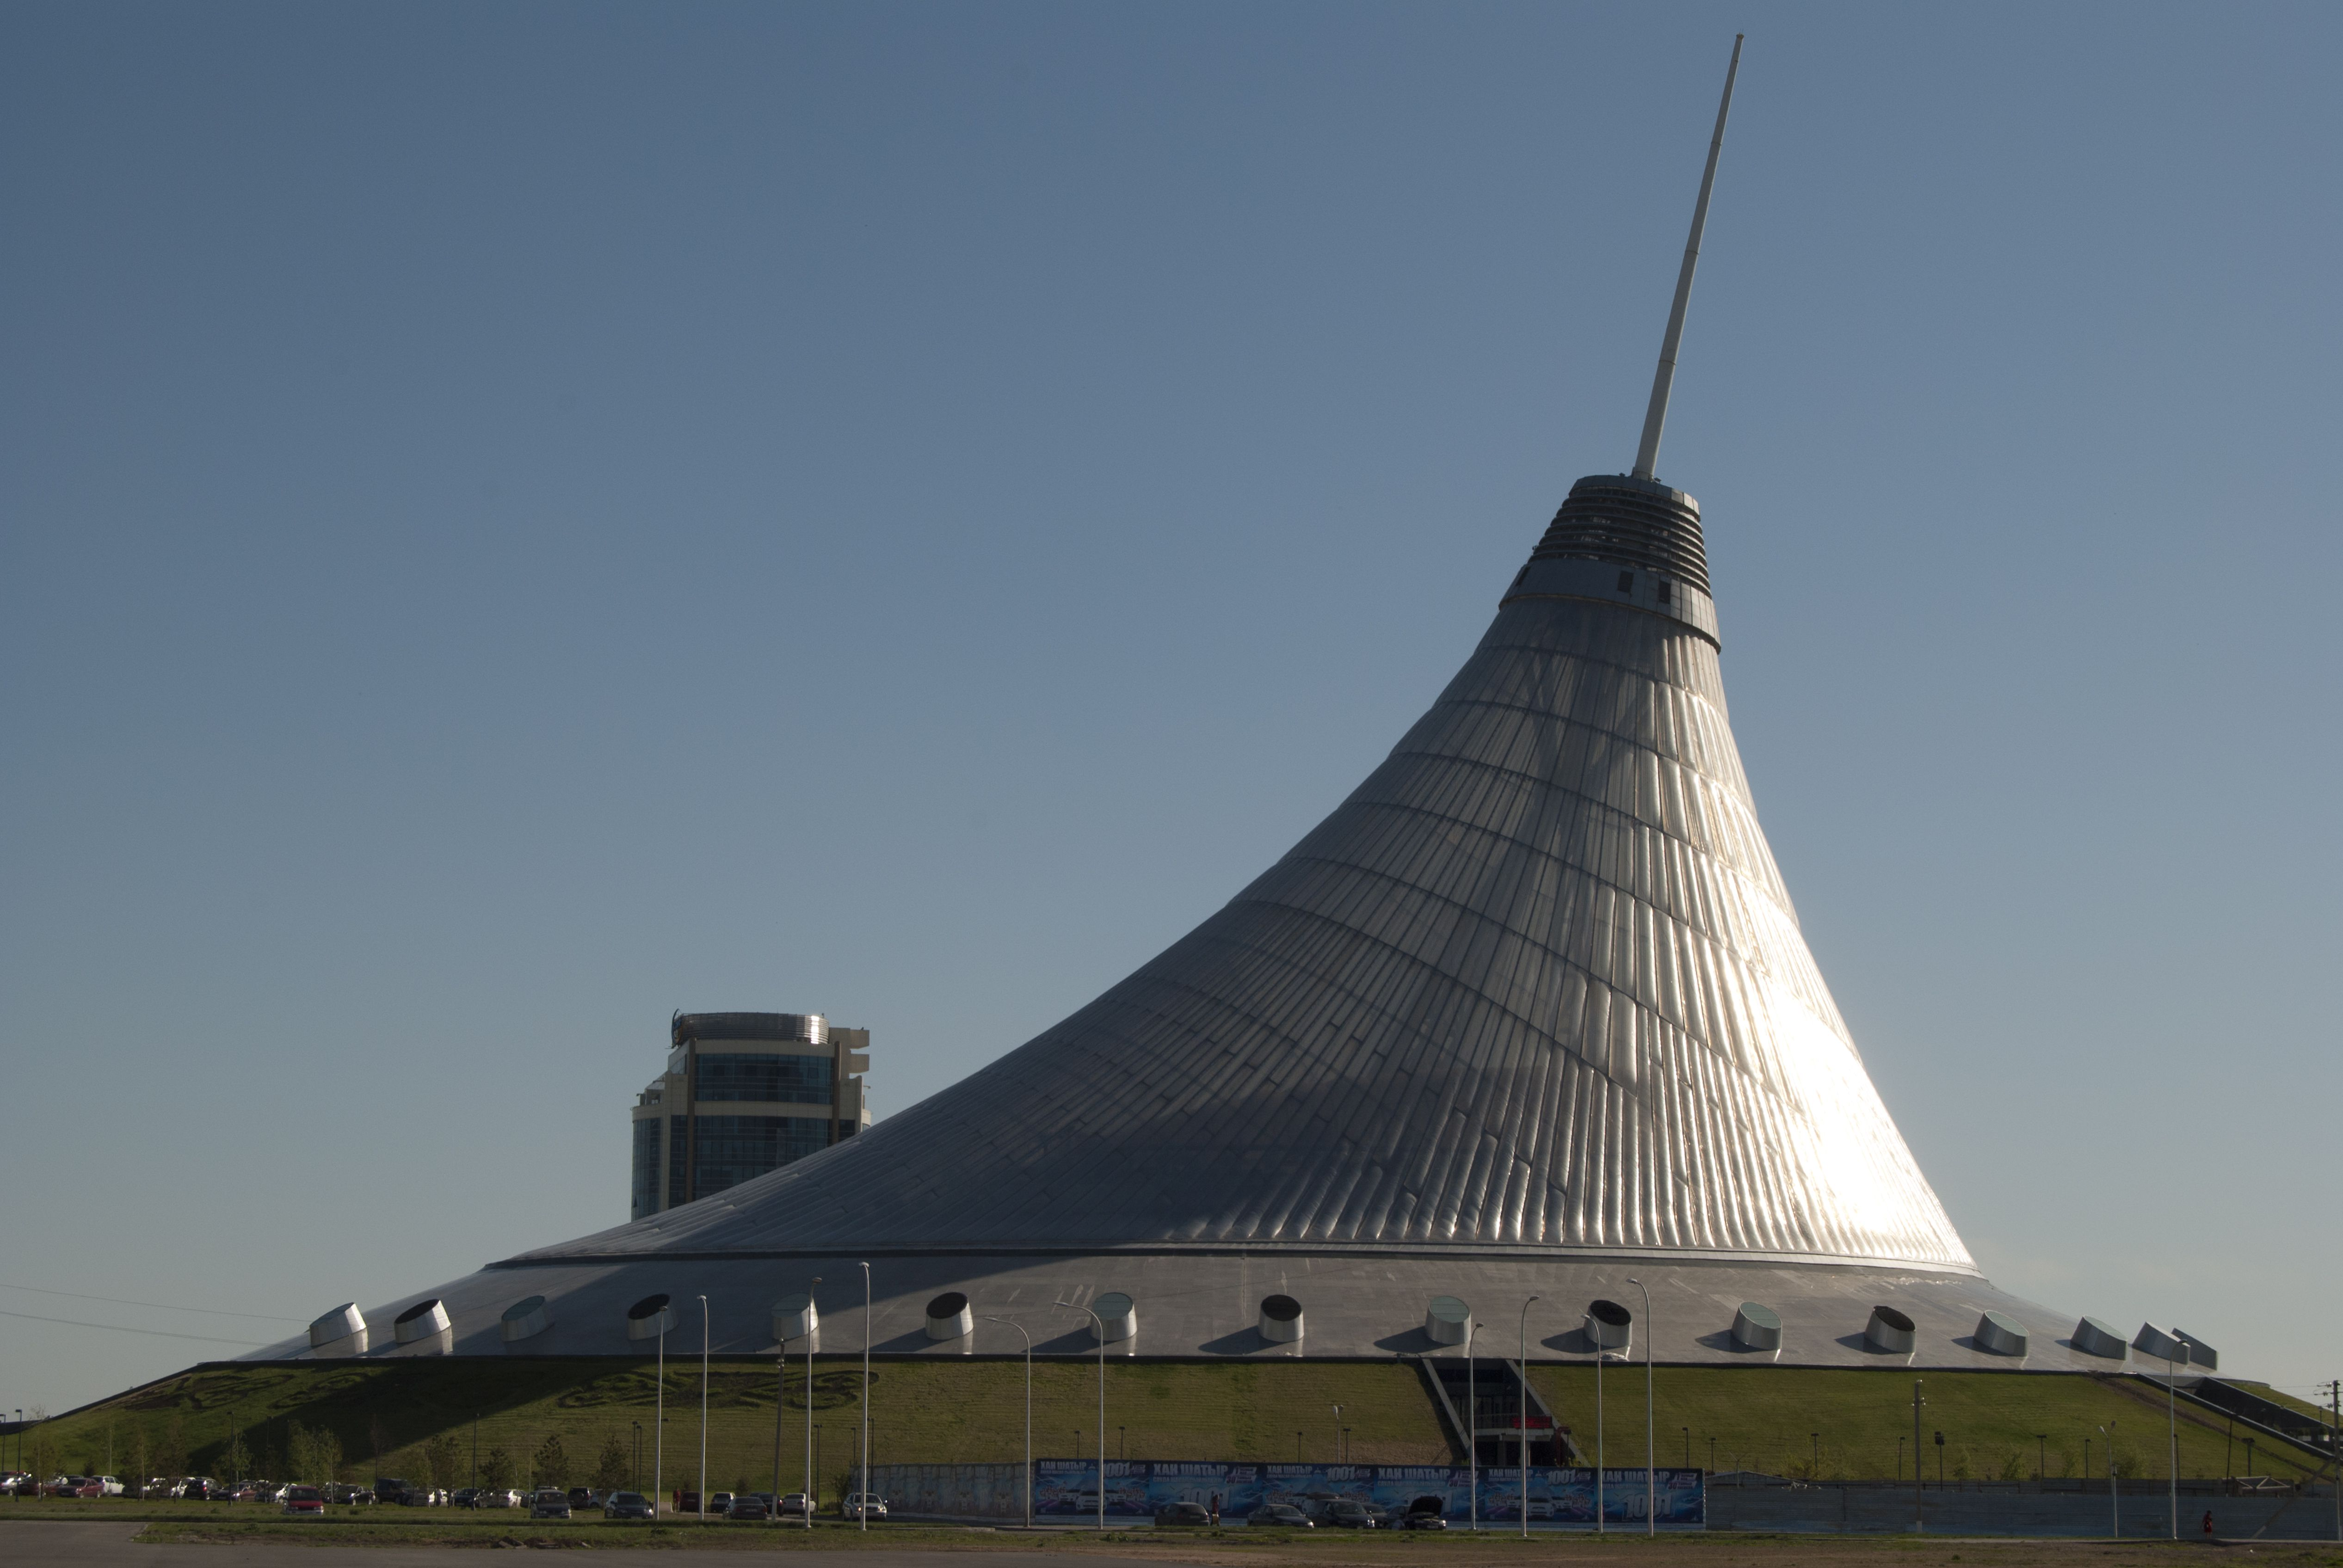 Khan Shatyr Entertainment Center designed by Norman Foster in Astana, the capital city of Kazakhstan